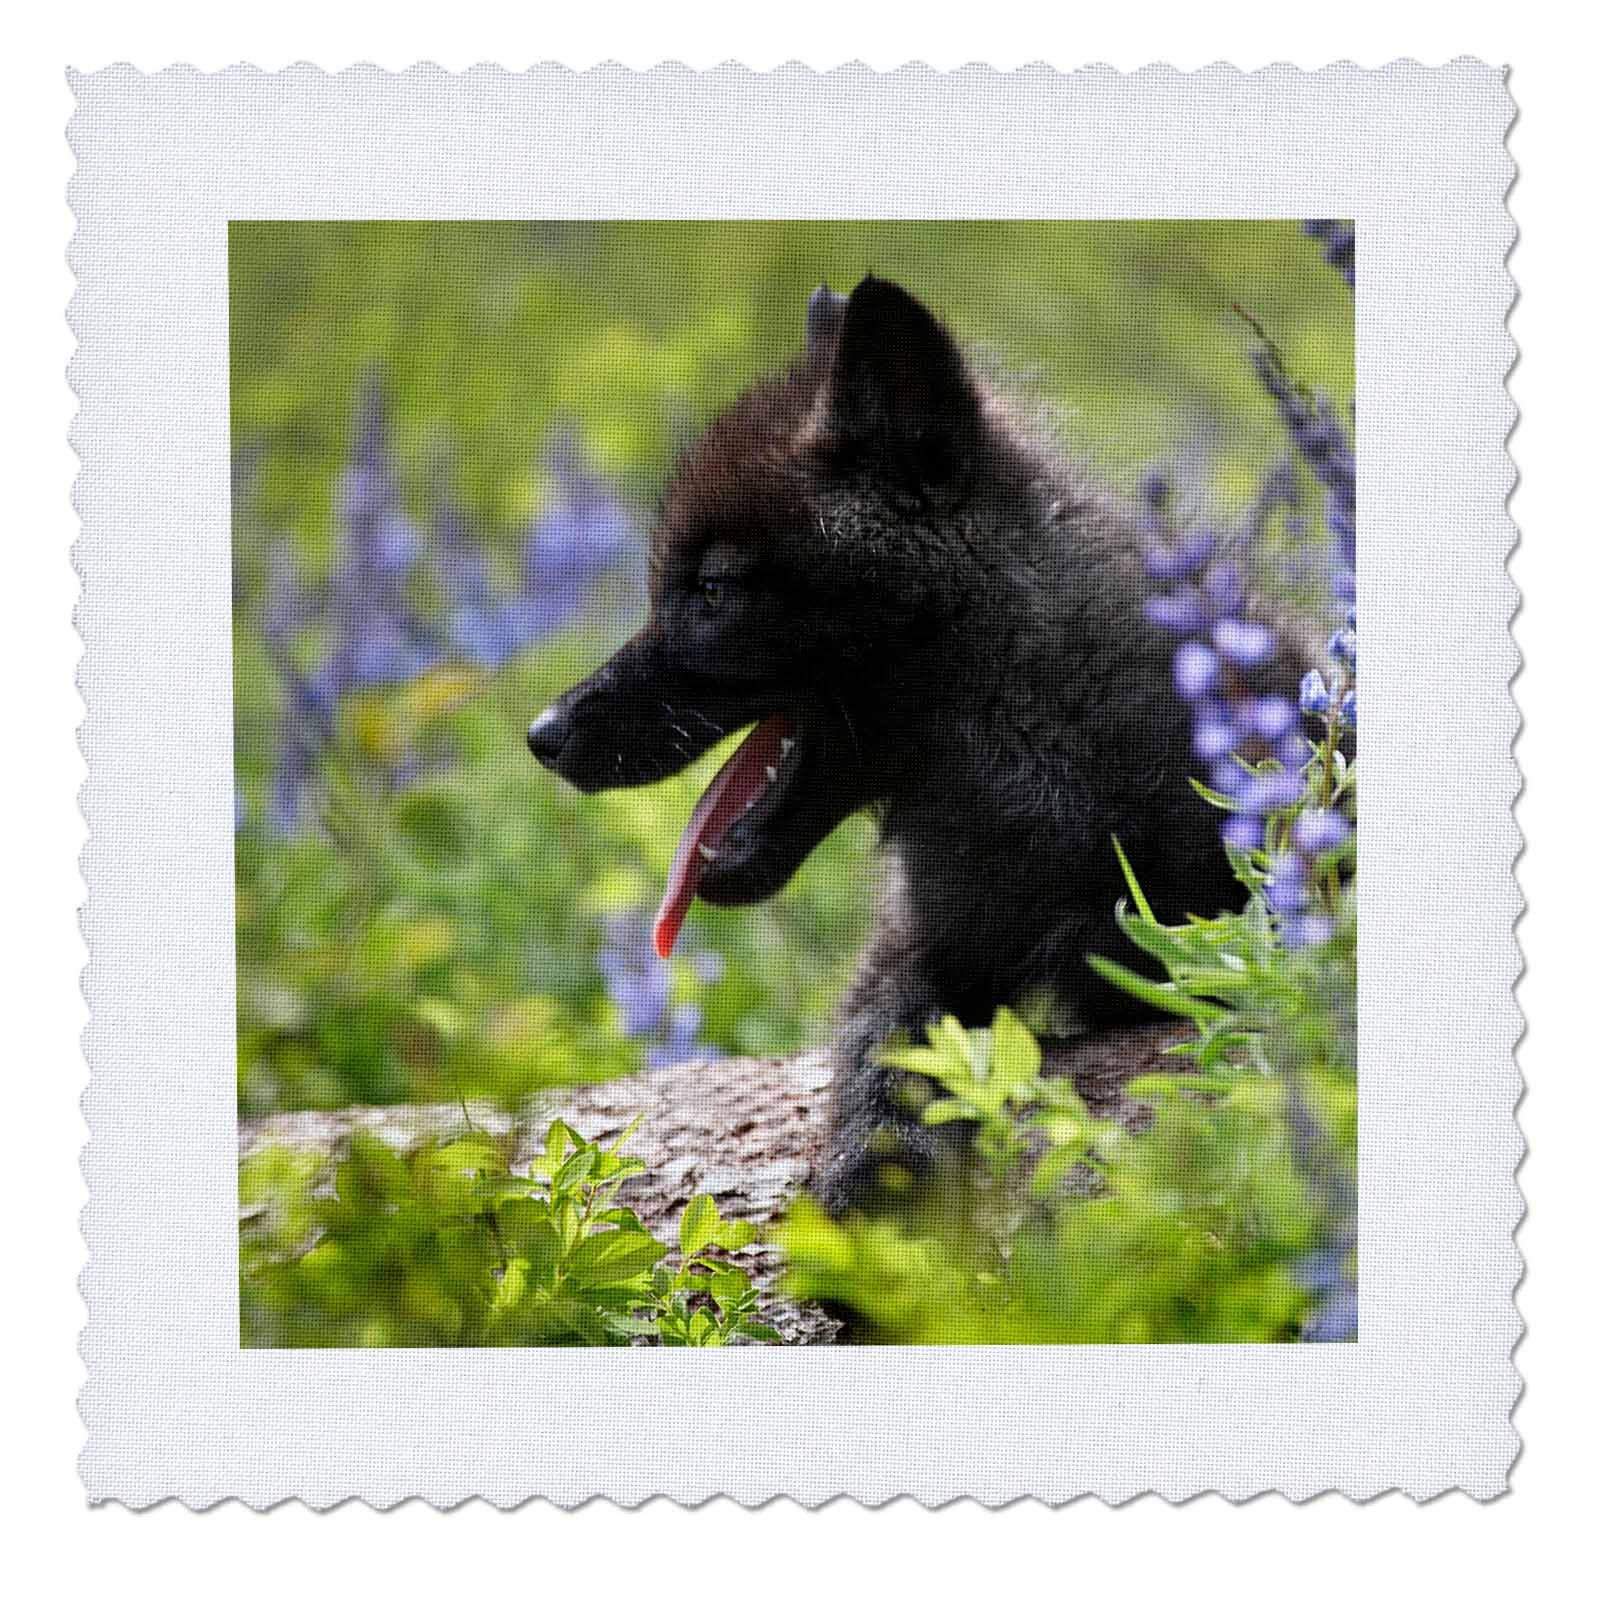 3dRose Danita Delimont - Baby Animals - Dark Gray wolf, Canis lupus, pup in wildflowers, Montana - 18x18 inch quilt square (qs_259644_7)